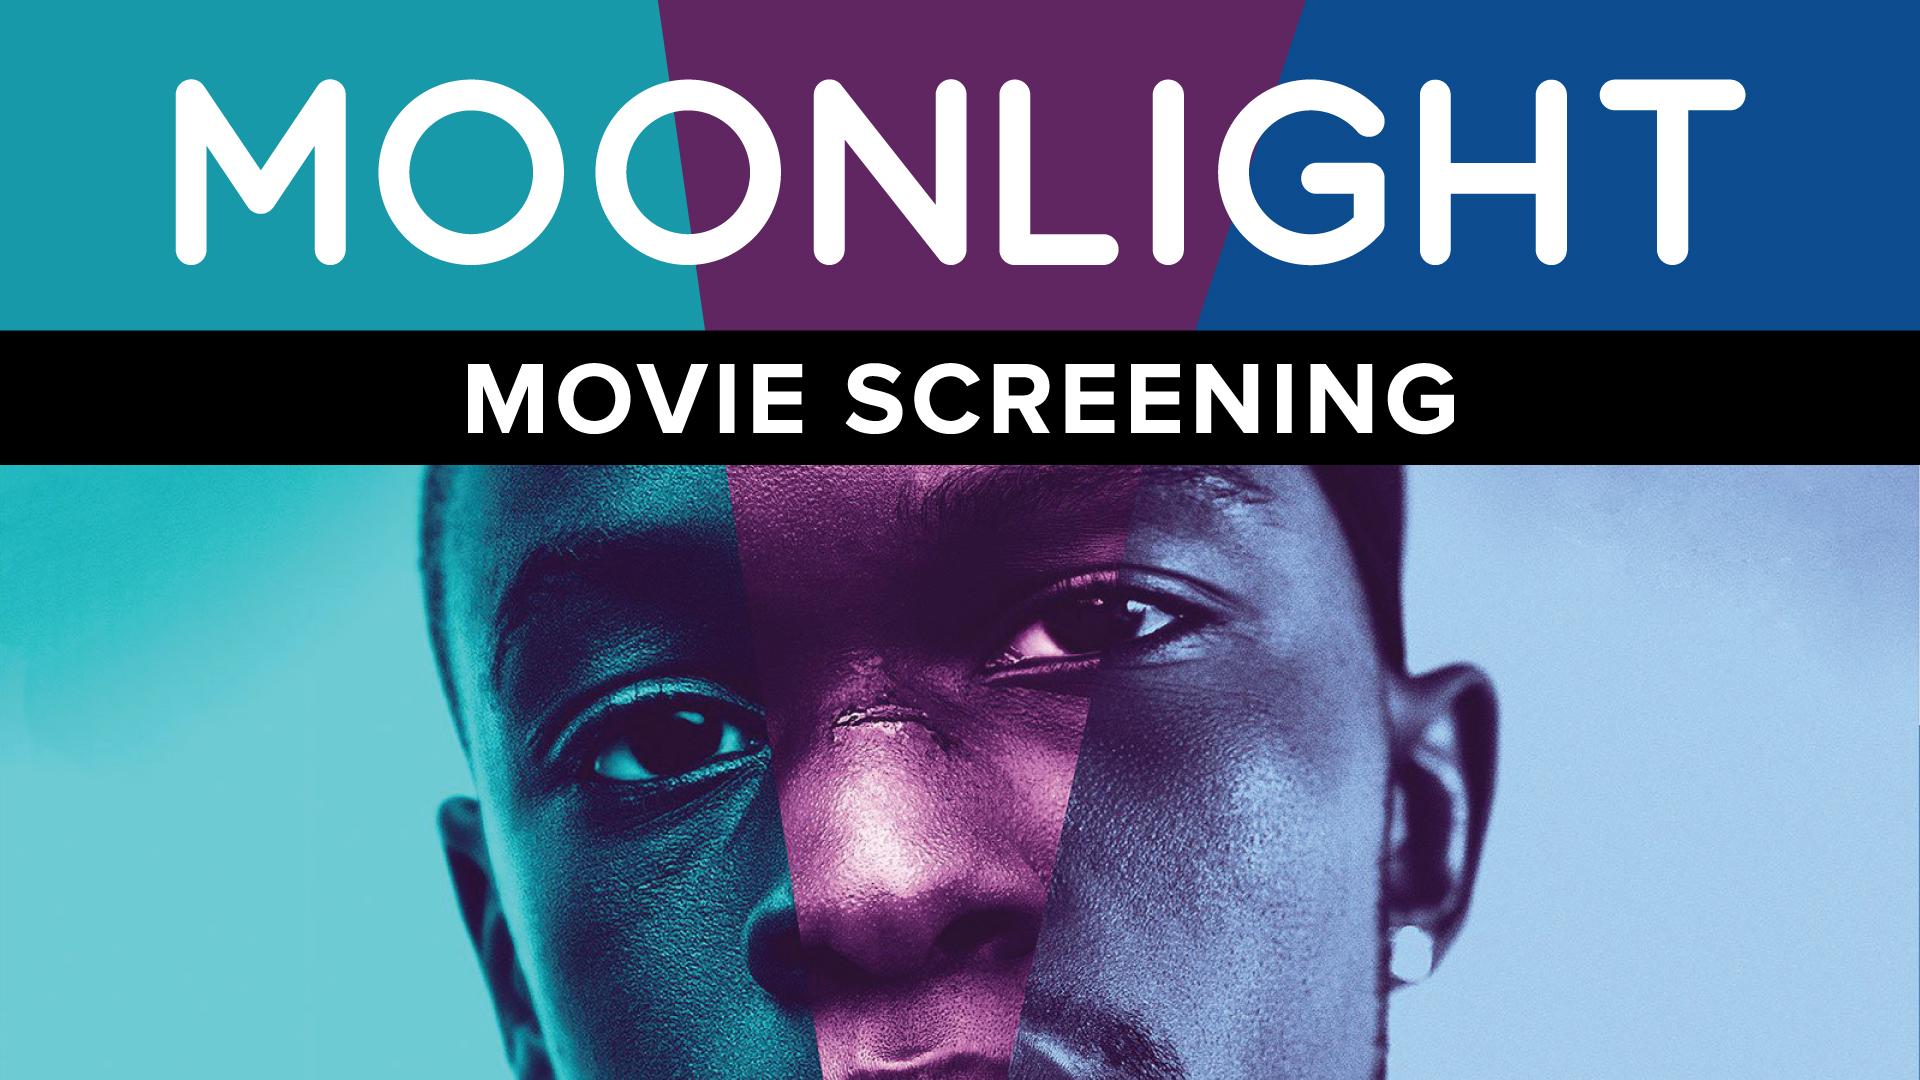 Moonlight Movie Screening